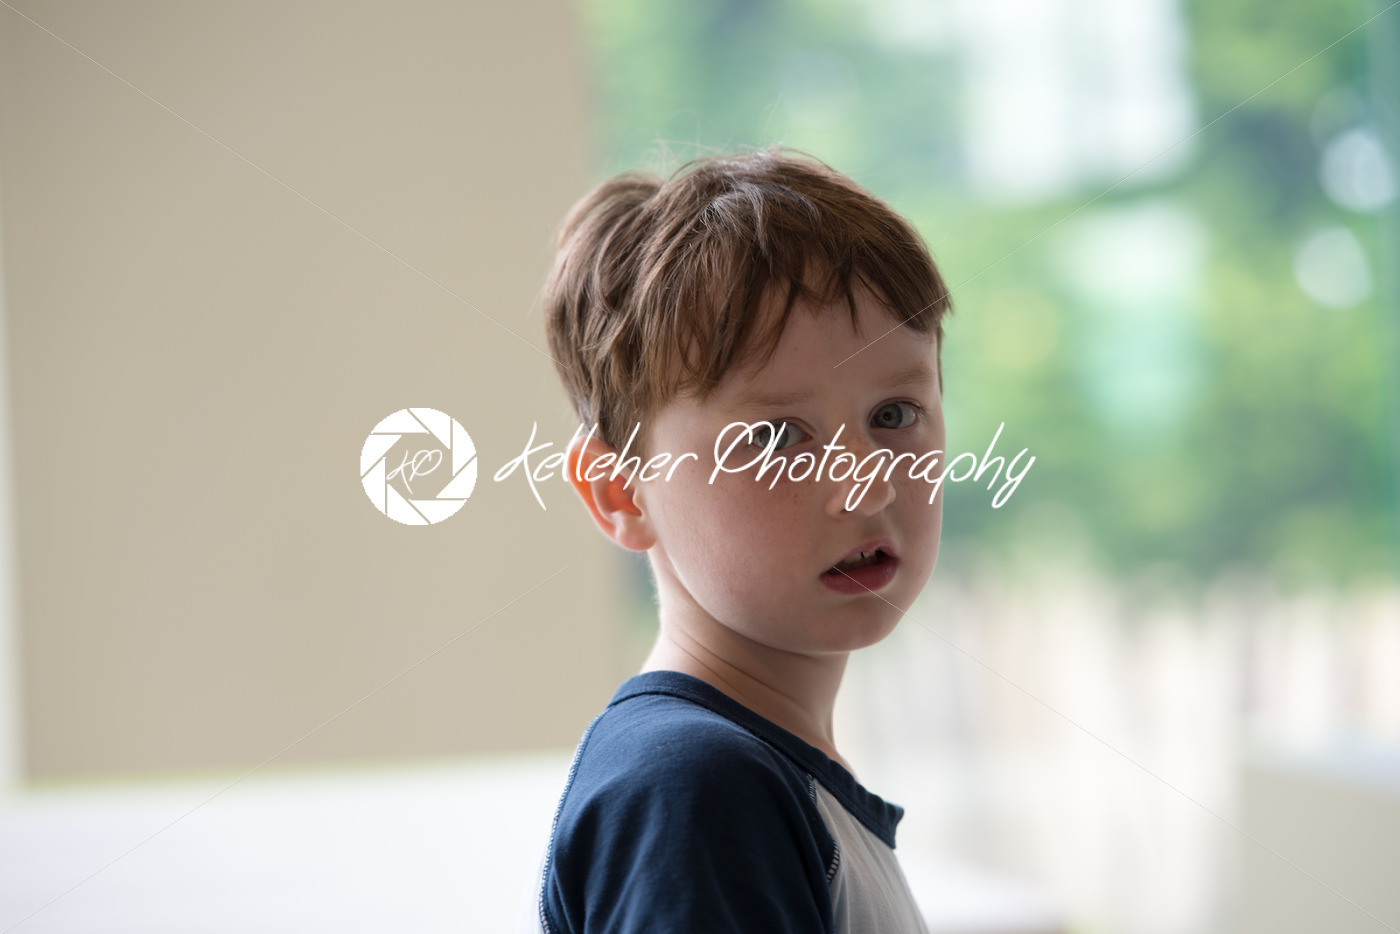 Young boy looking back at camera - Kelleher Photography Store